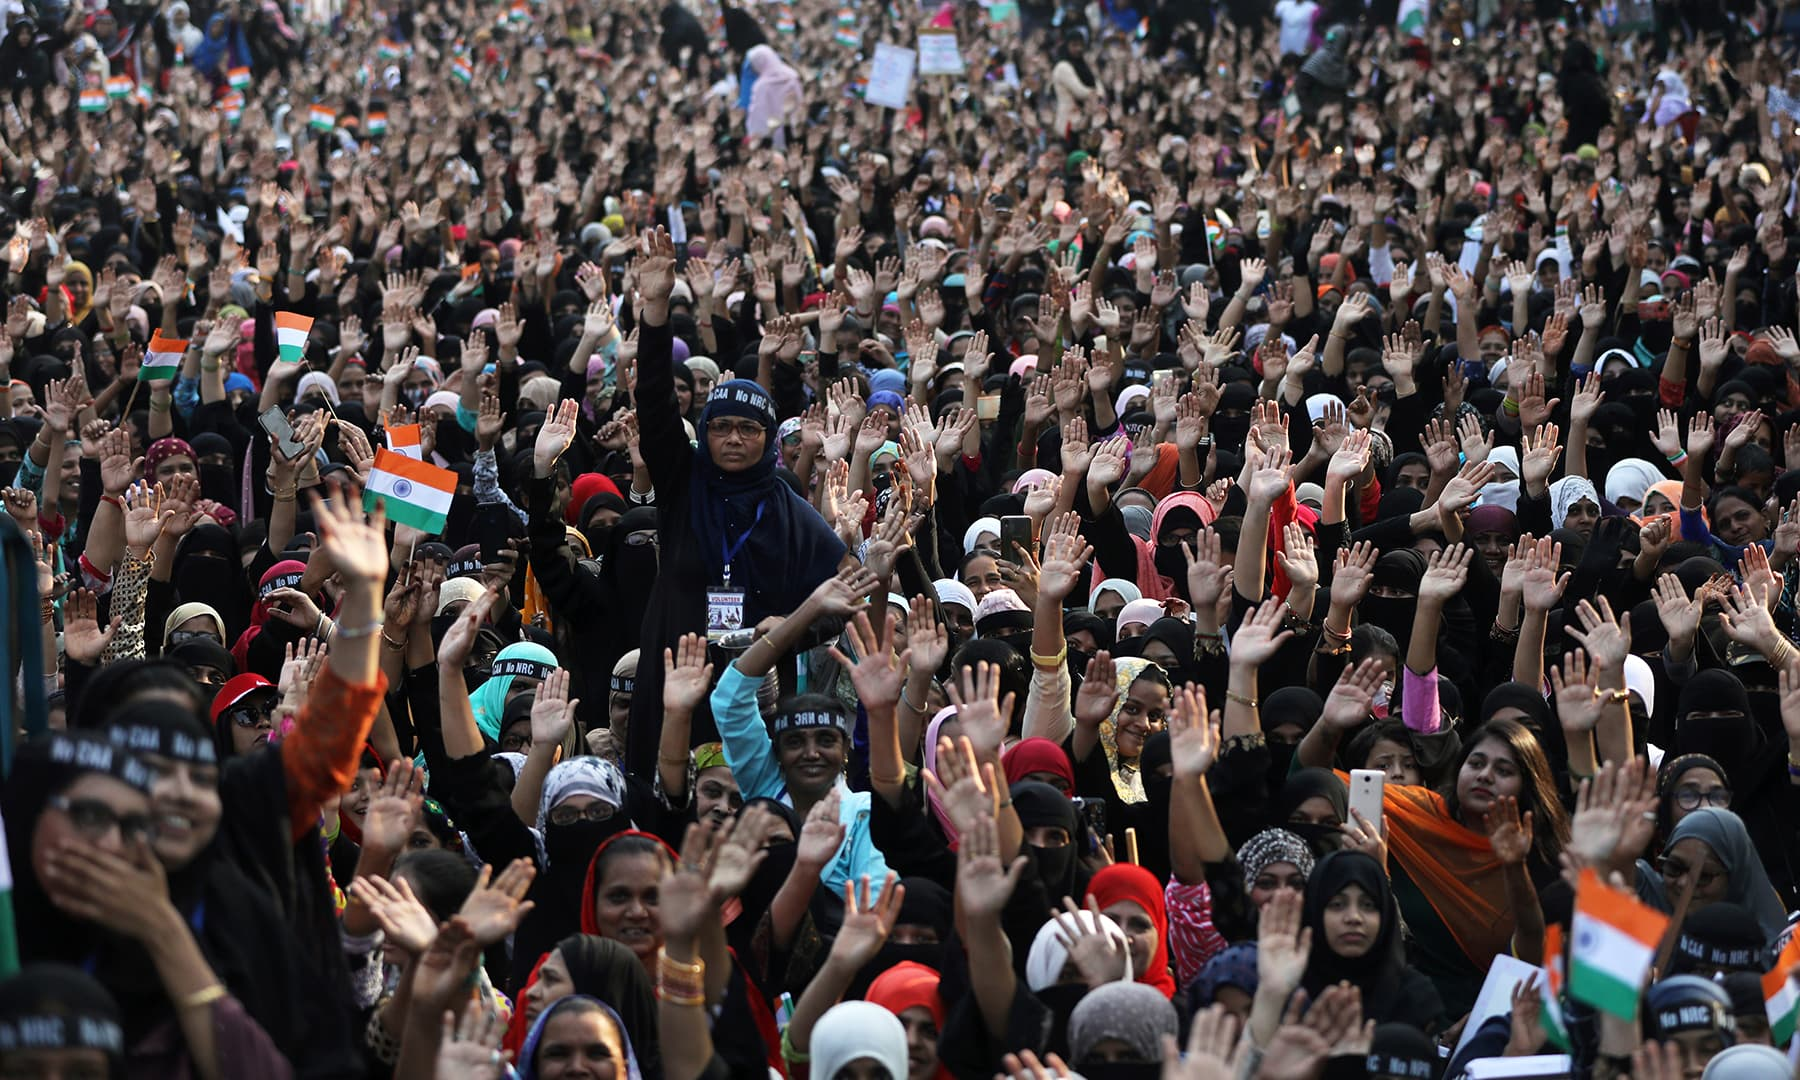 Demonstrators gesture during a protest against a new citizenship law on the outskirts of Mumbai, India, January 26. — Reuters